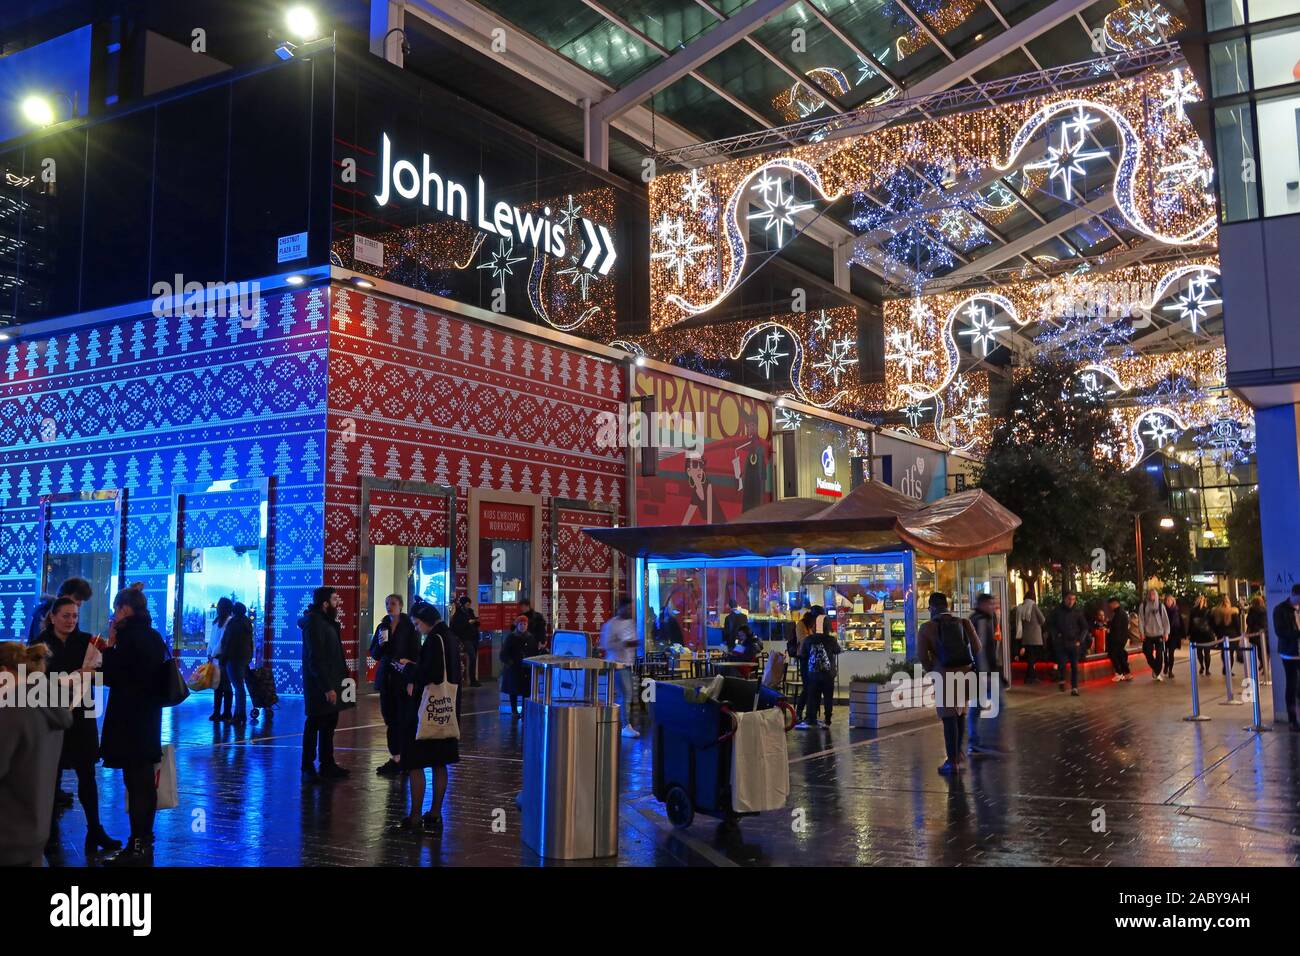 GoTonySmith,HotpixUK,@HotpixUK,England,English,London,South East,Stratford,East London,SE,UK,Westfield,Xmas,Christmas,Westfield Christmas,shop,shops,retail,inside,interior,E20,results,Unibail-Rodamco-Westfield,night,evening,late night shopping,chain stores,out of town shopping,high st decline,high street decline